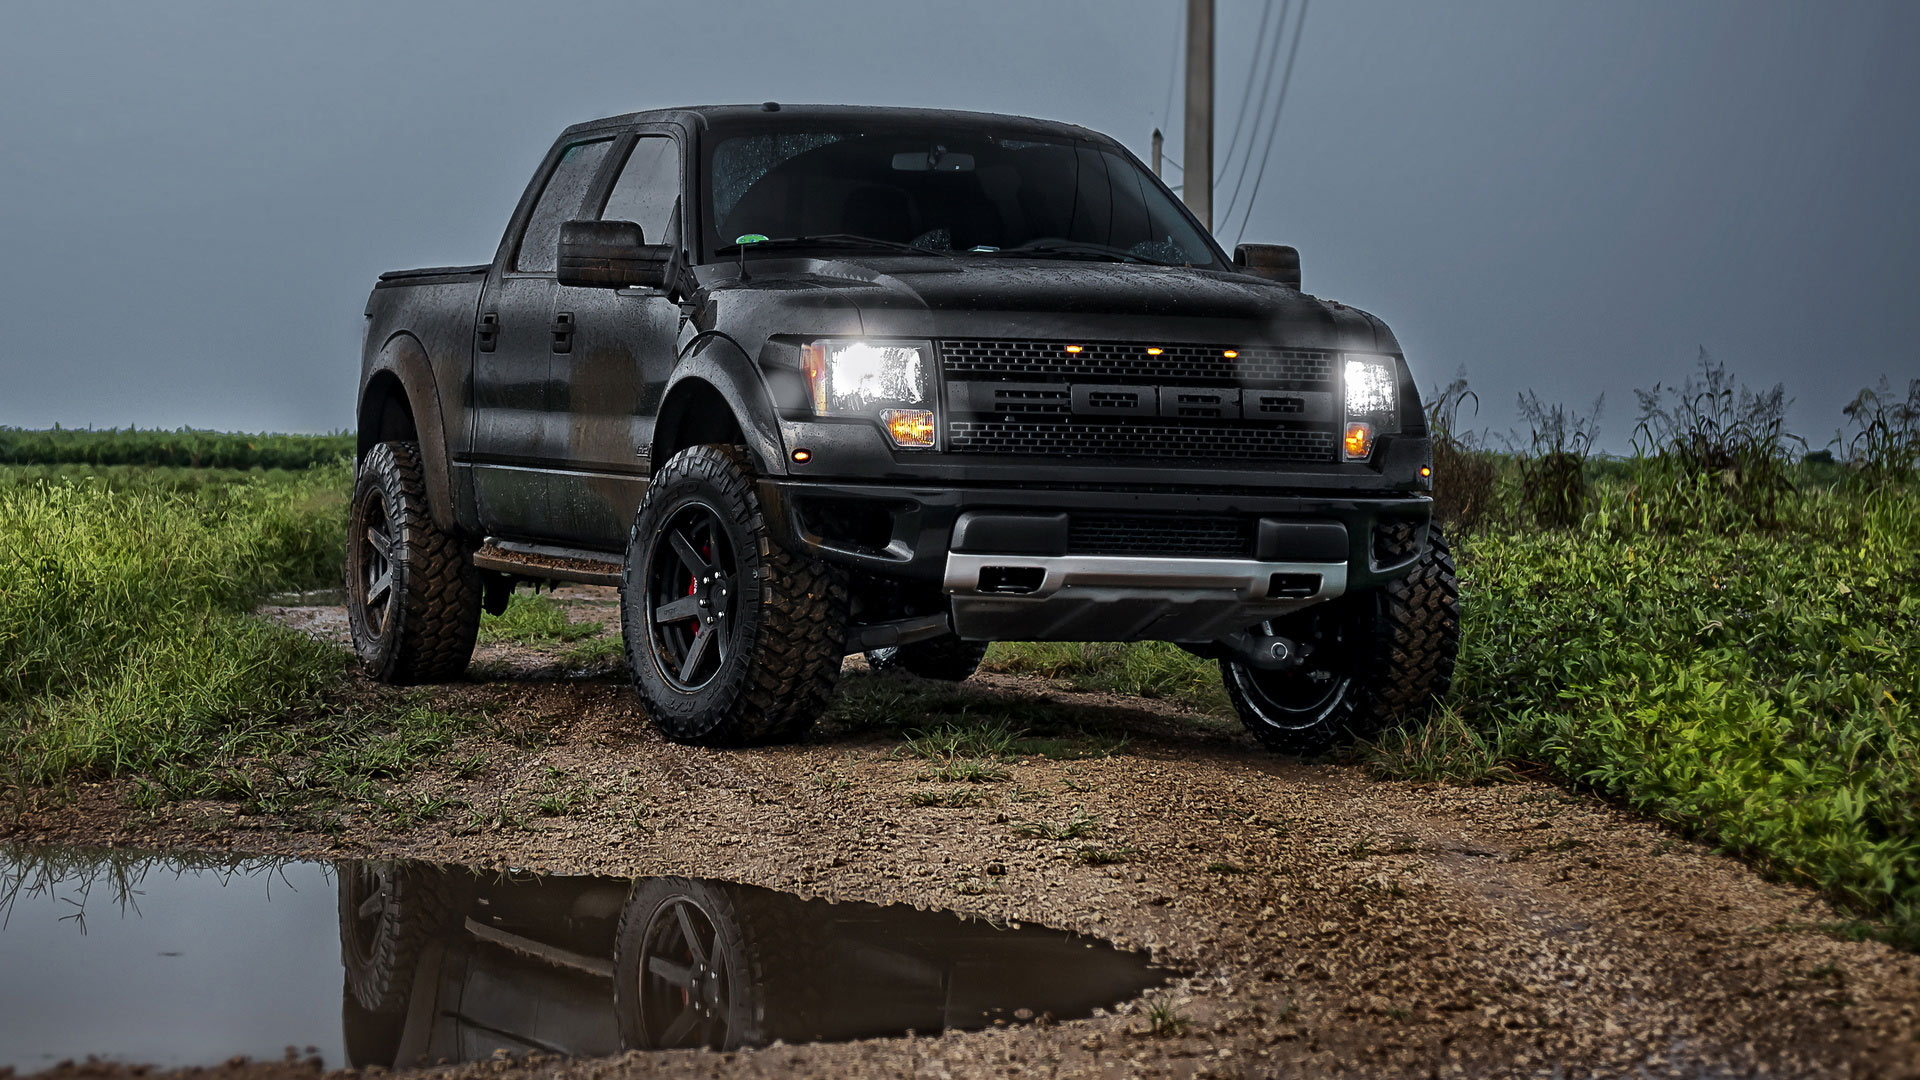 Black Ford F150 Raptor Wallpaper 2502 Wallpaper Wallpaper Screen 1920x1080